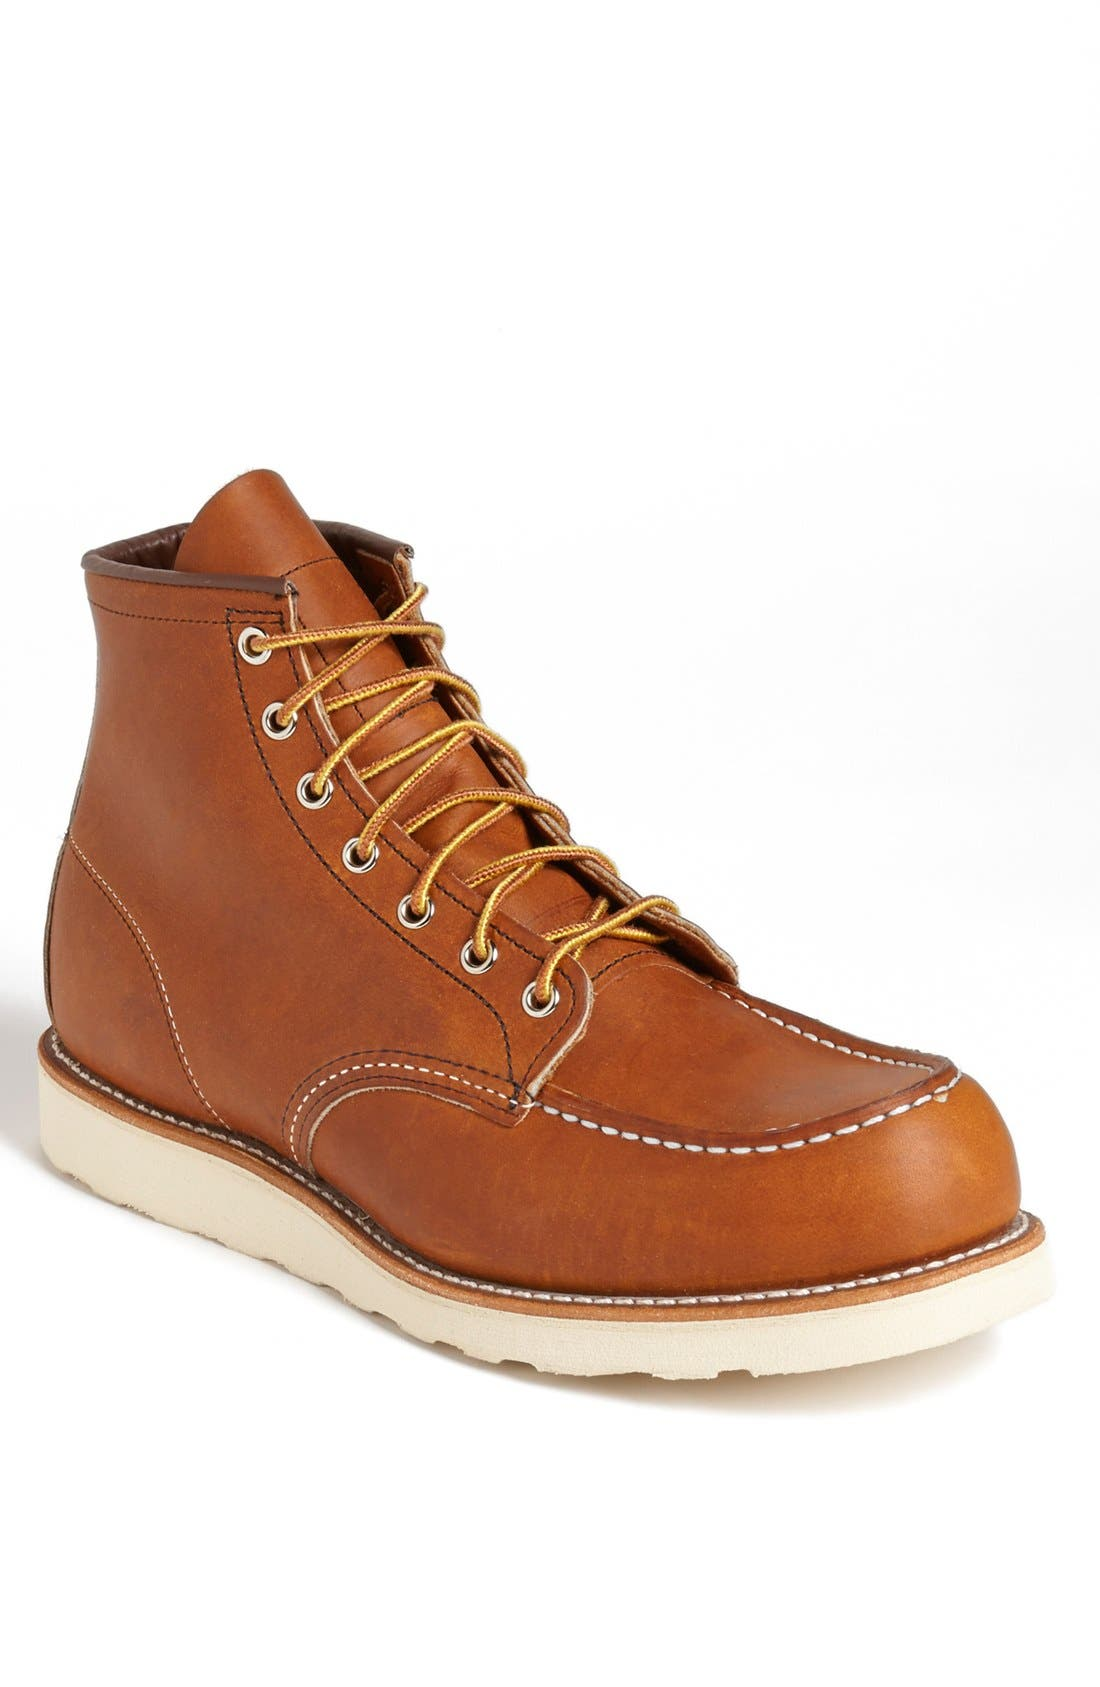 Main Image - Red Wing '875' 6 Inch Moc Toe Boot